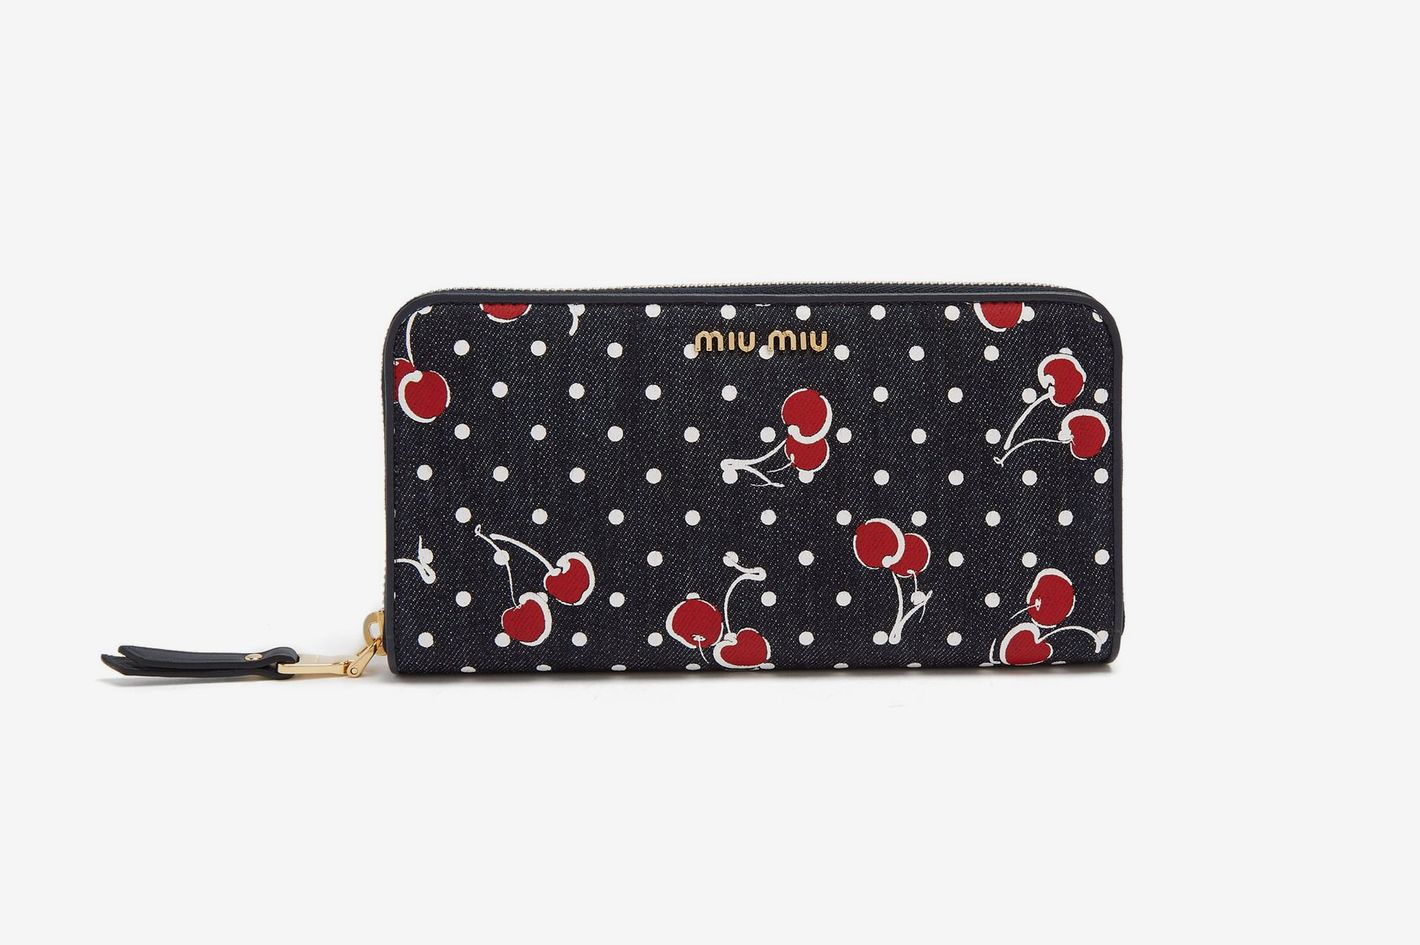 8041acb38ce1 Miu Miu Cherry-Print Denim Wallet